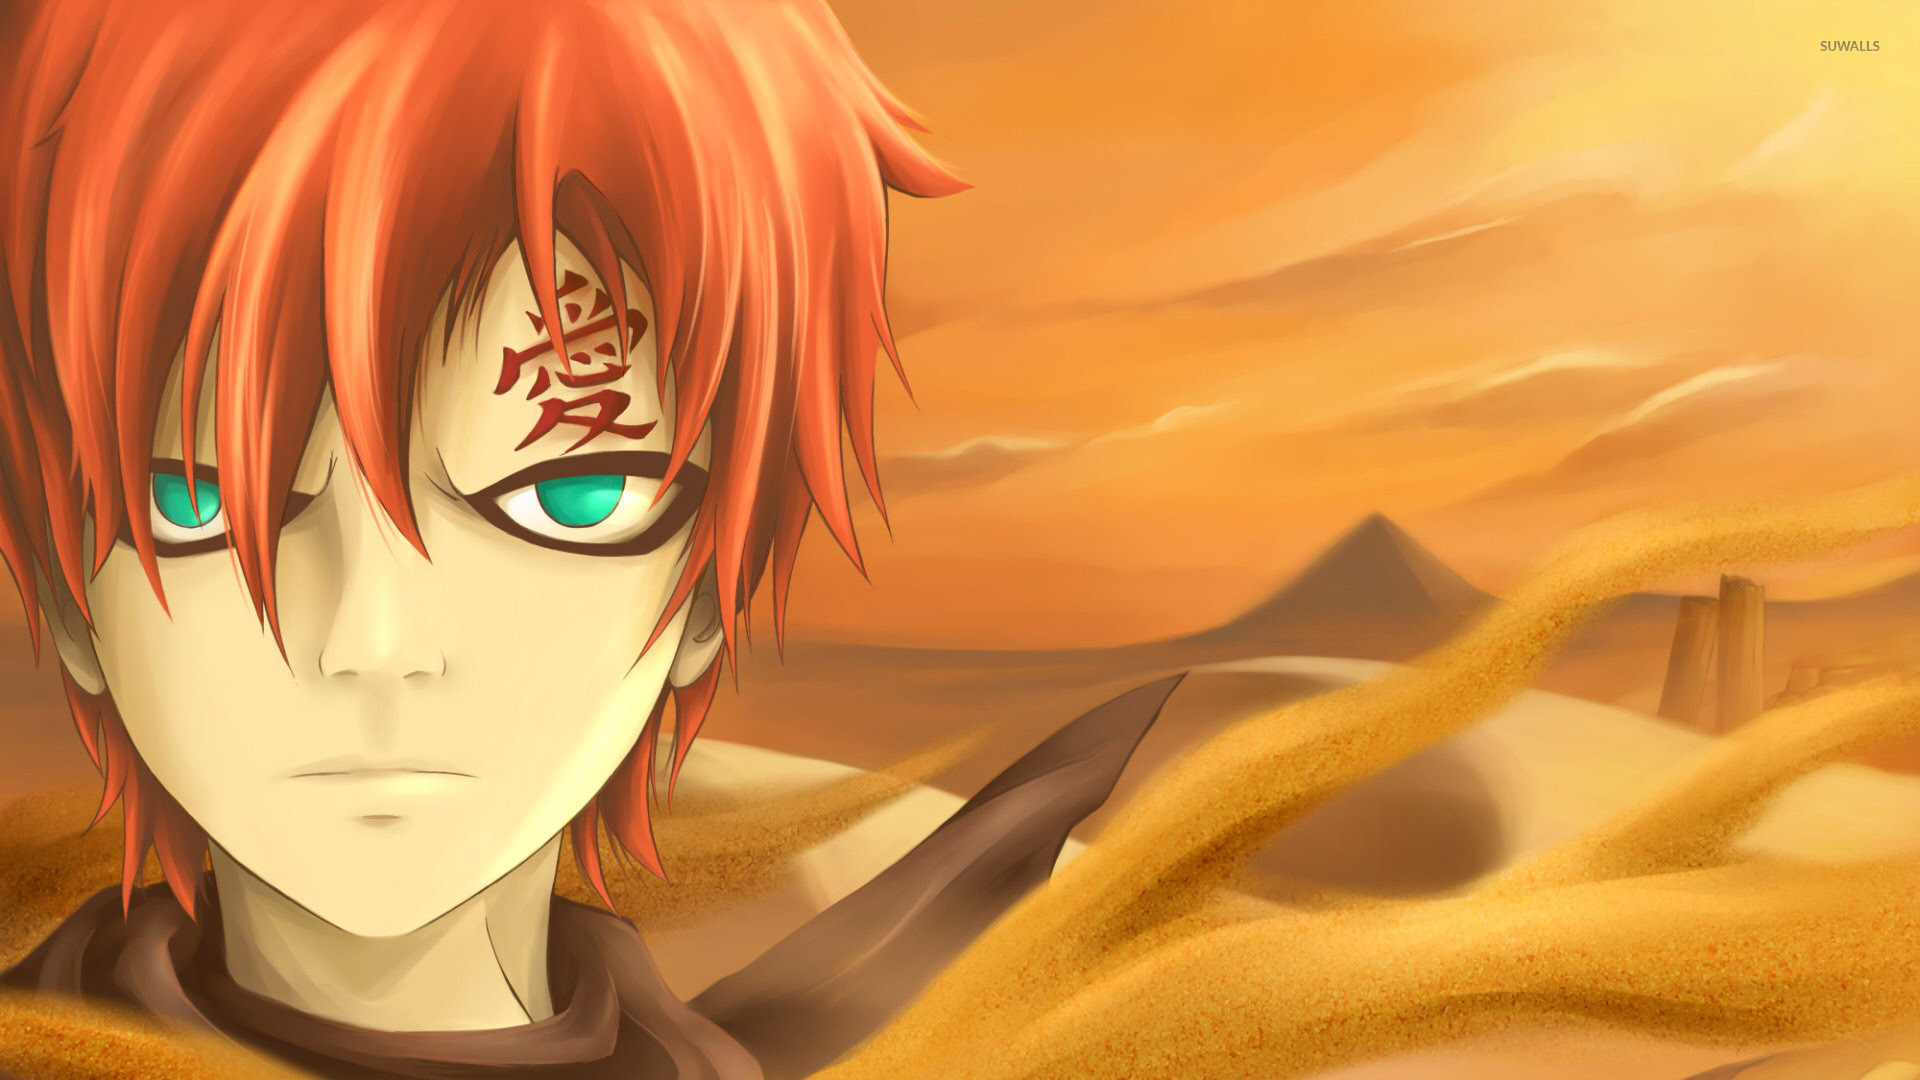 Gaara   Naruto [5] wallpaper   Anime wallpapers   29982 1920x1080